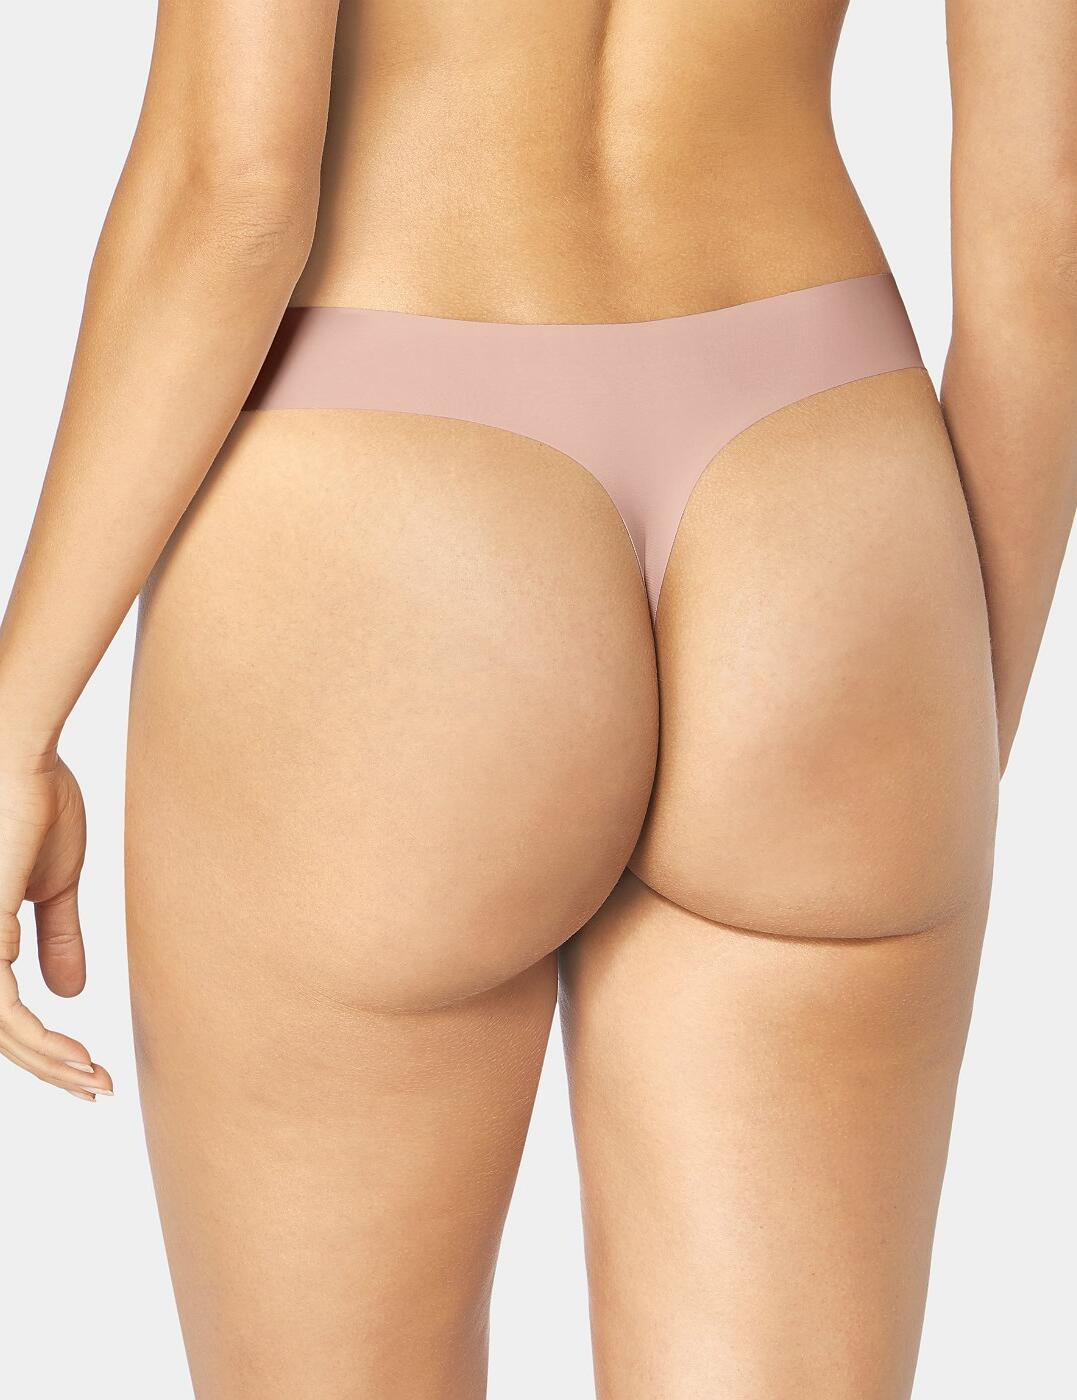 Details about  /Sloggi Zero Feel String Brief 10189219 Smooth Knickers No VPL Lingerie